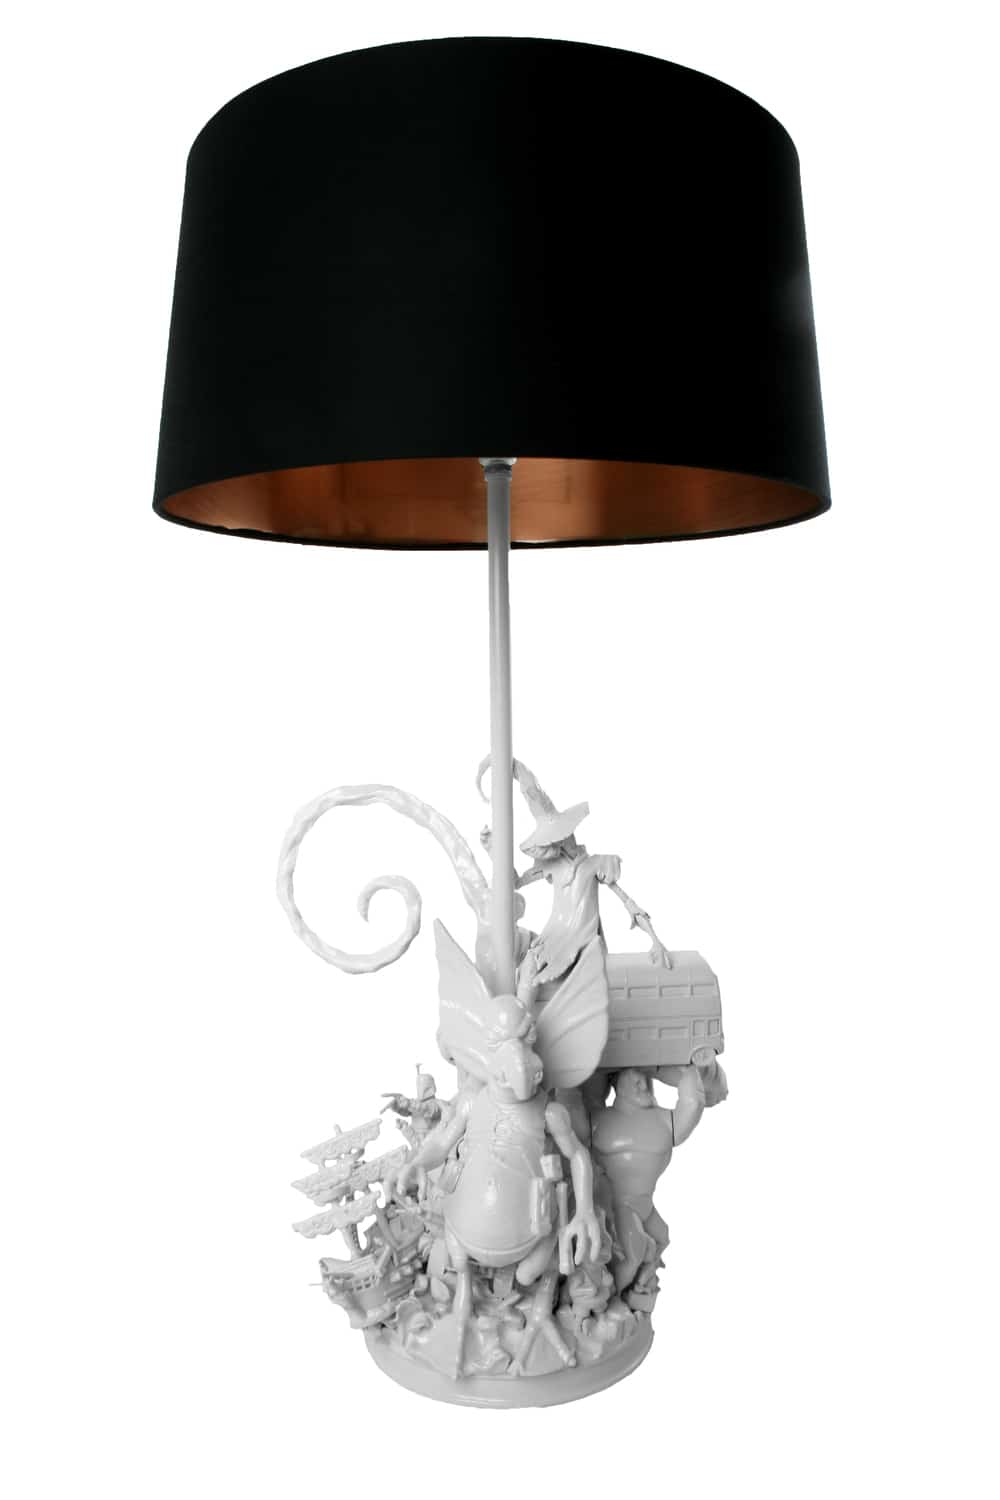 White Witch Lamp by Evil Robot Designs